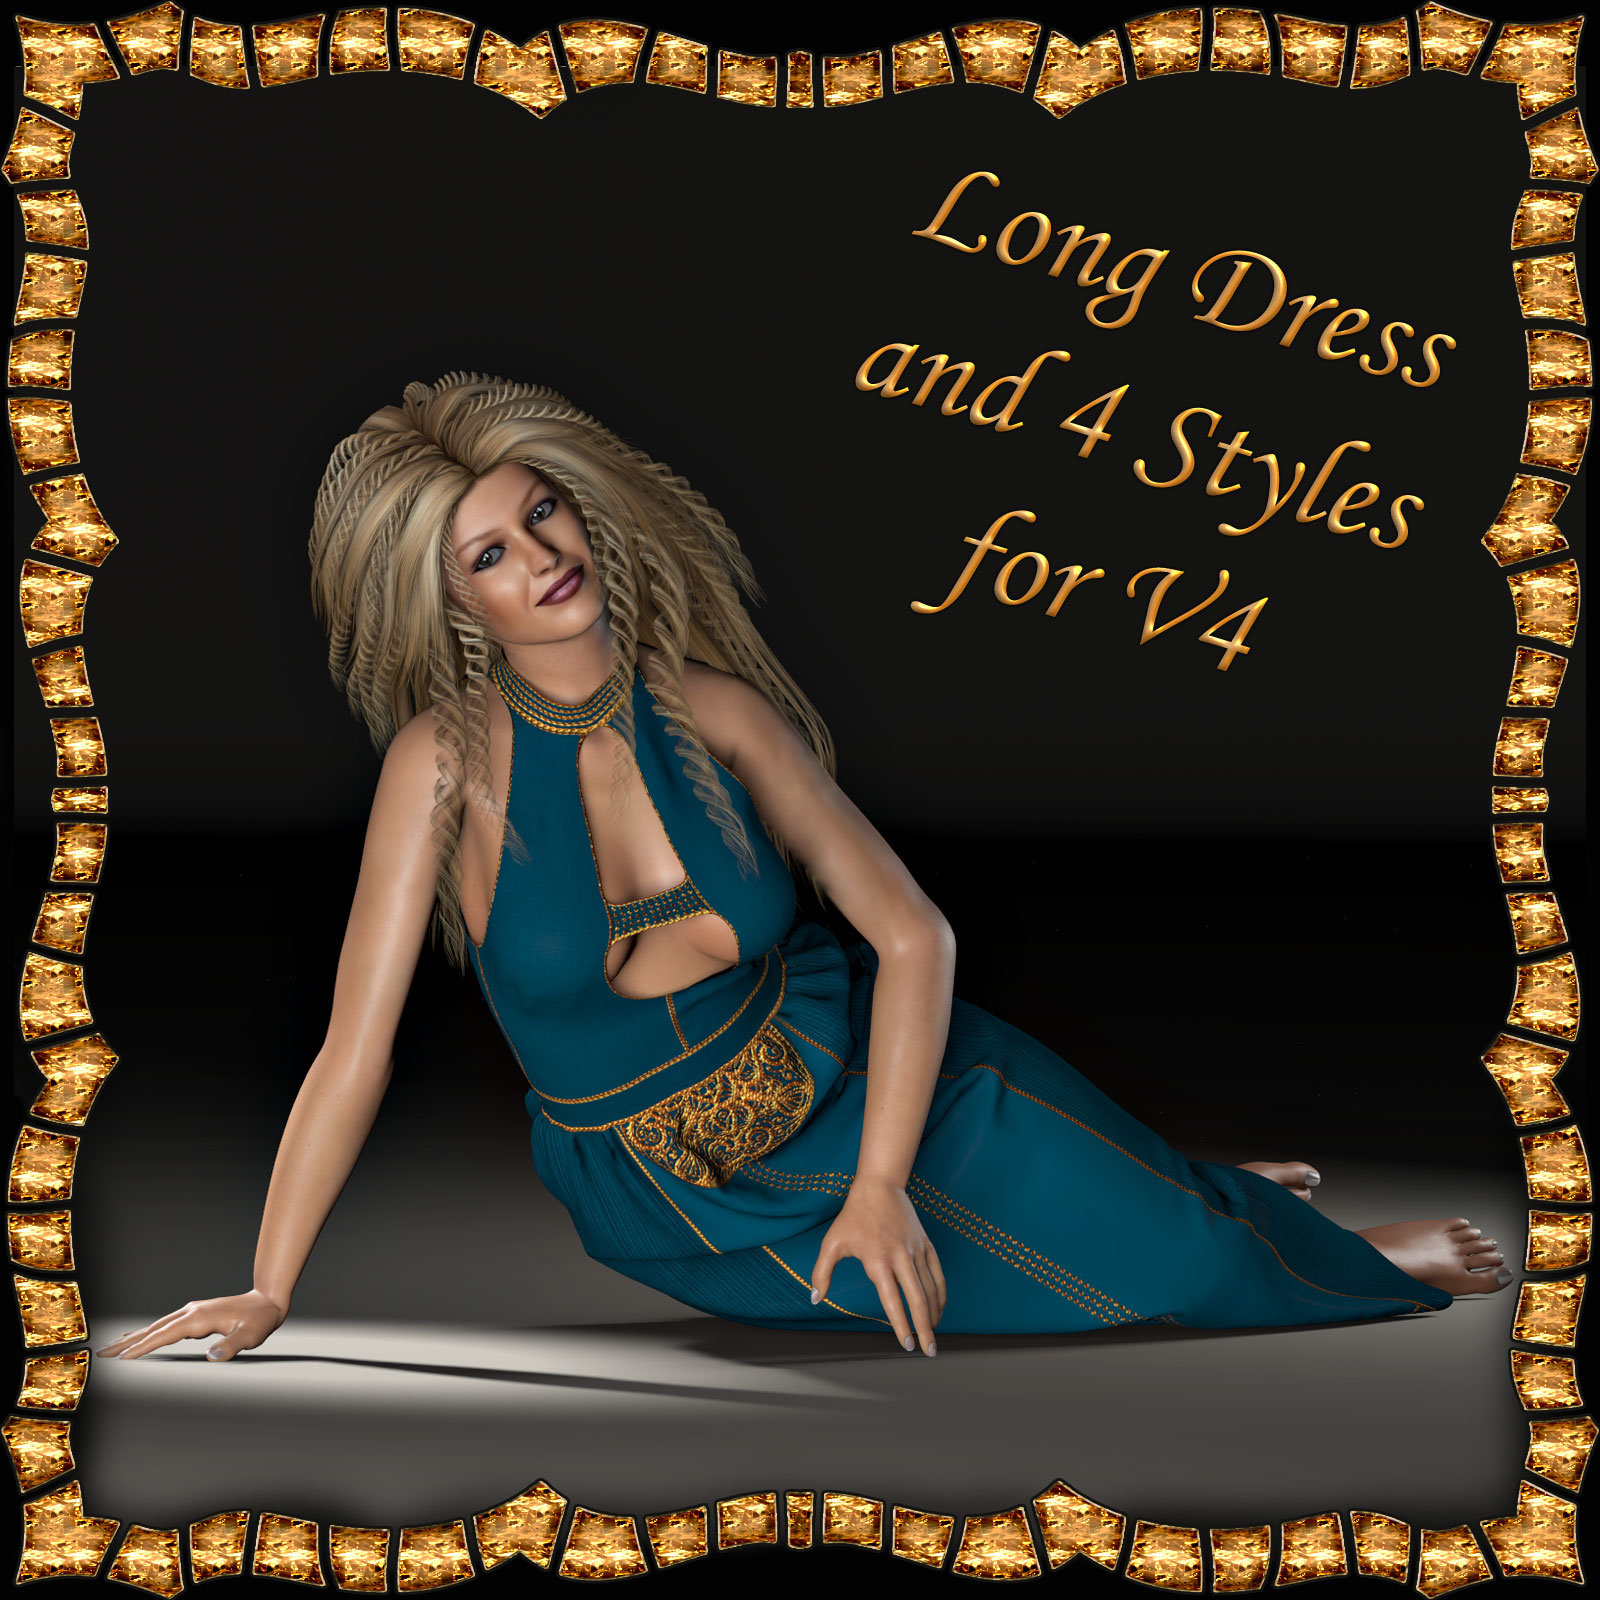 V4 Long Dress and 4 Styles for Poser